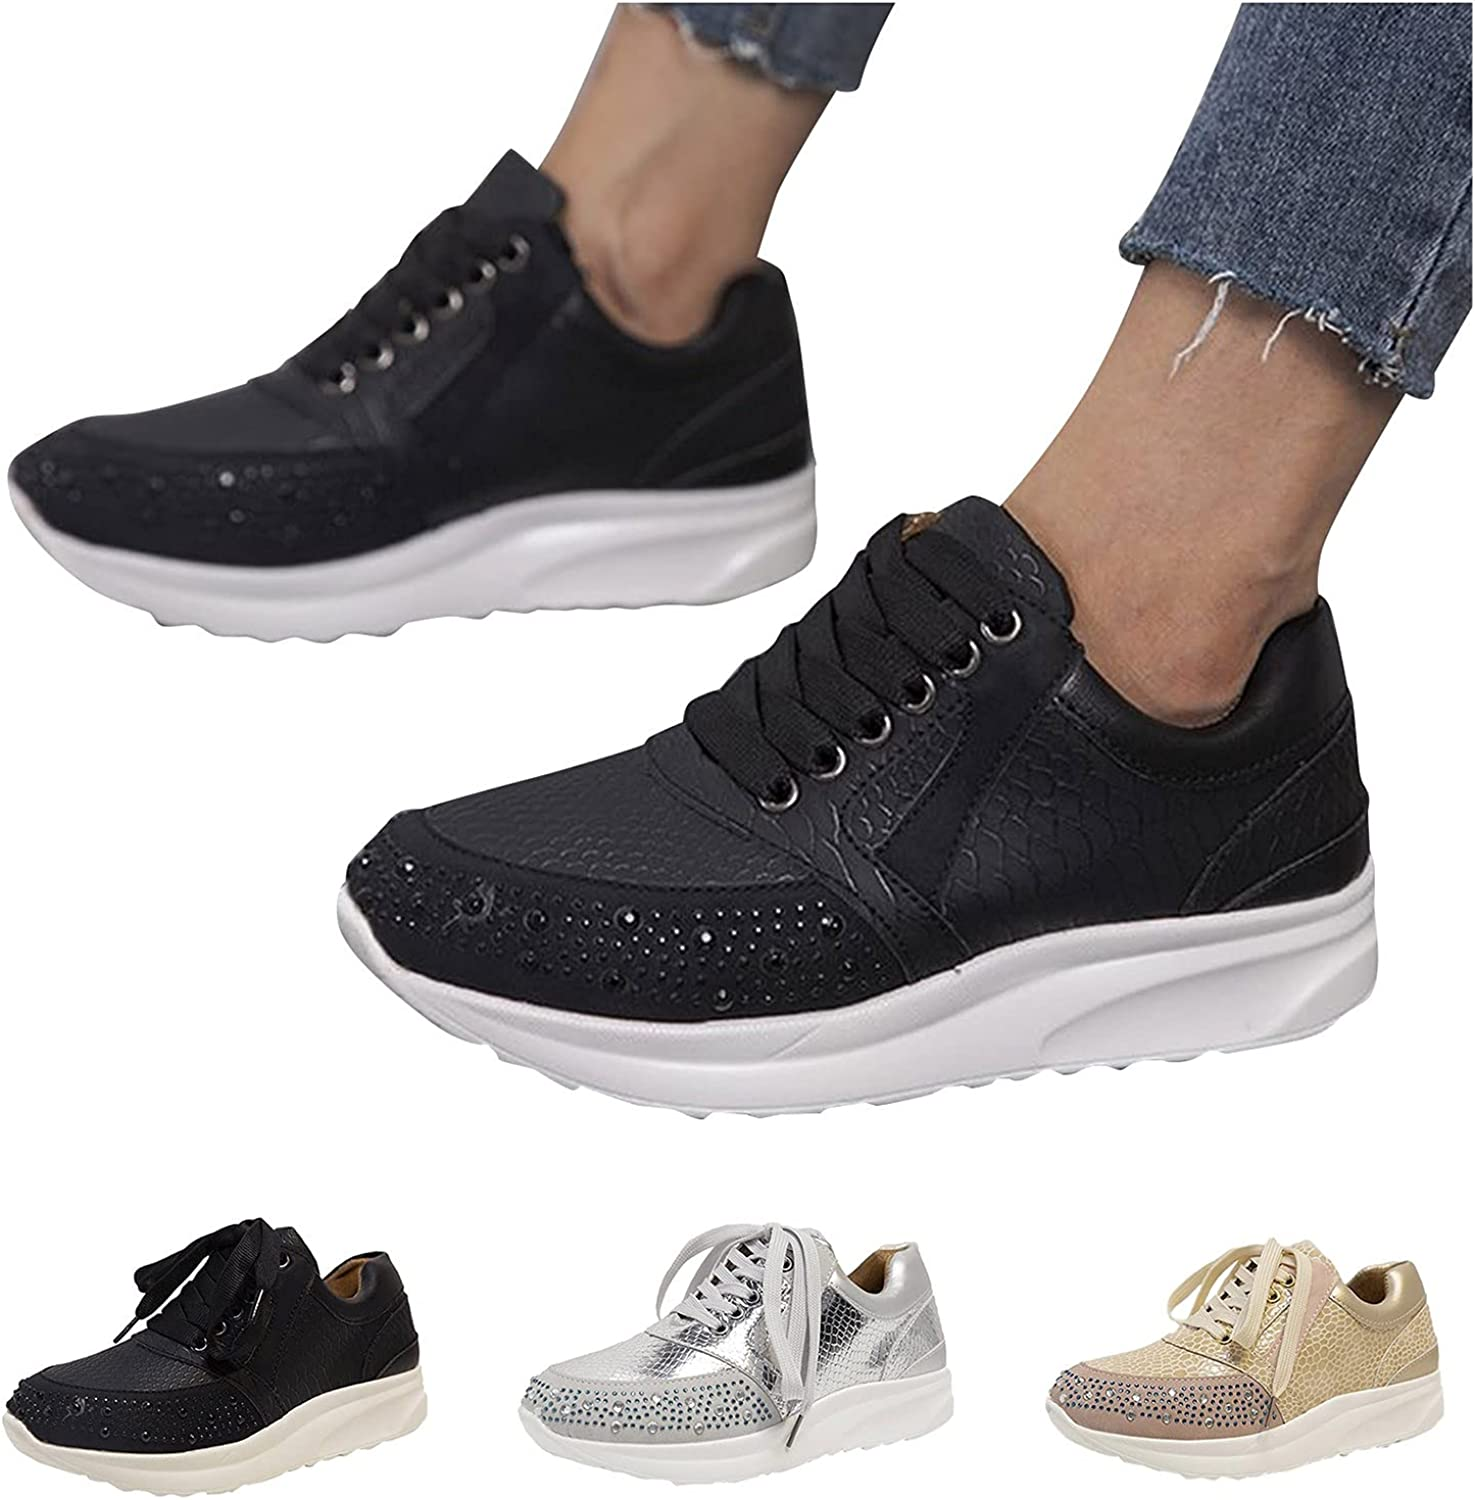 Kinsaiy Shoes for Women Lightweight discount Outdoo Fashion Running Fees free!!